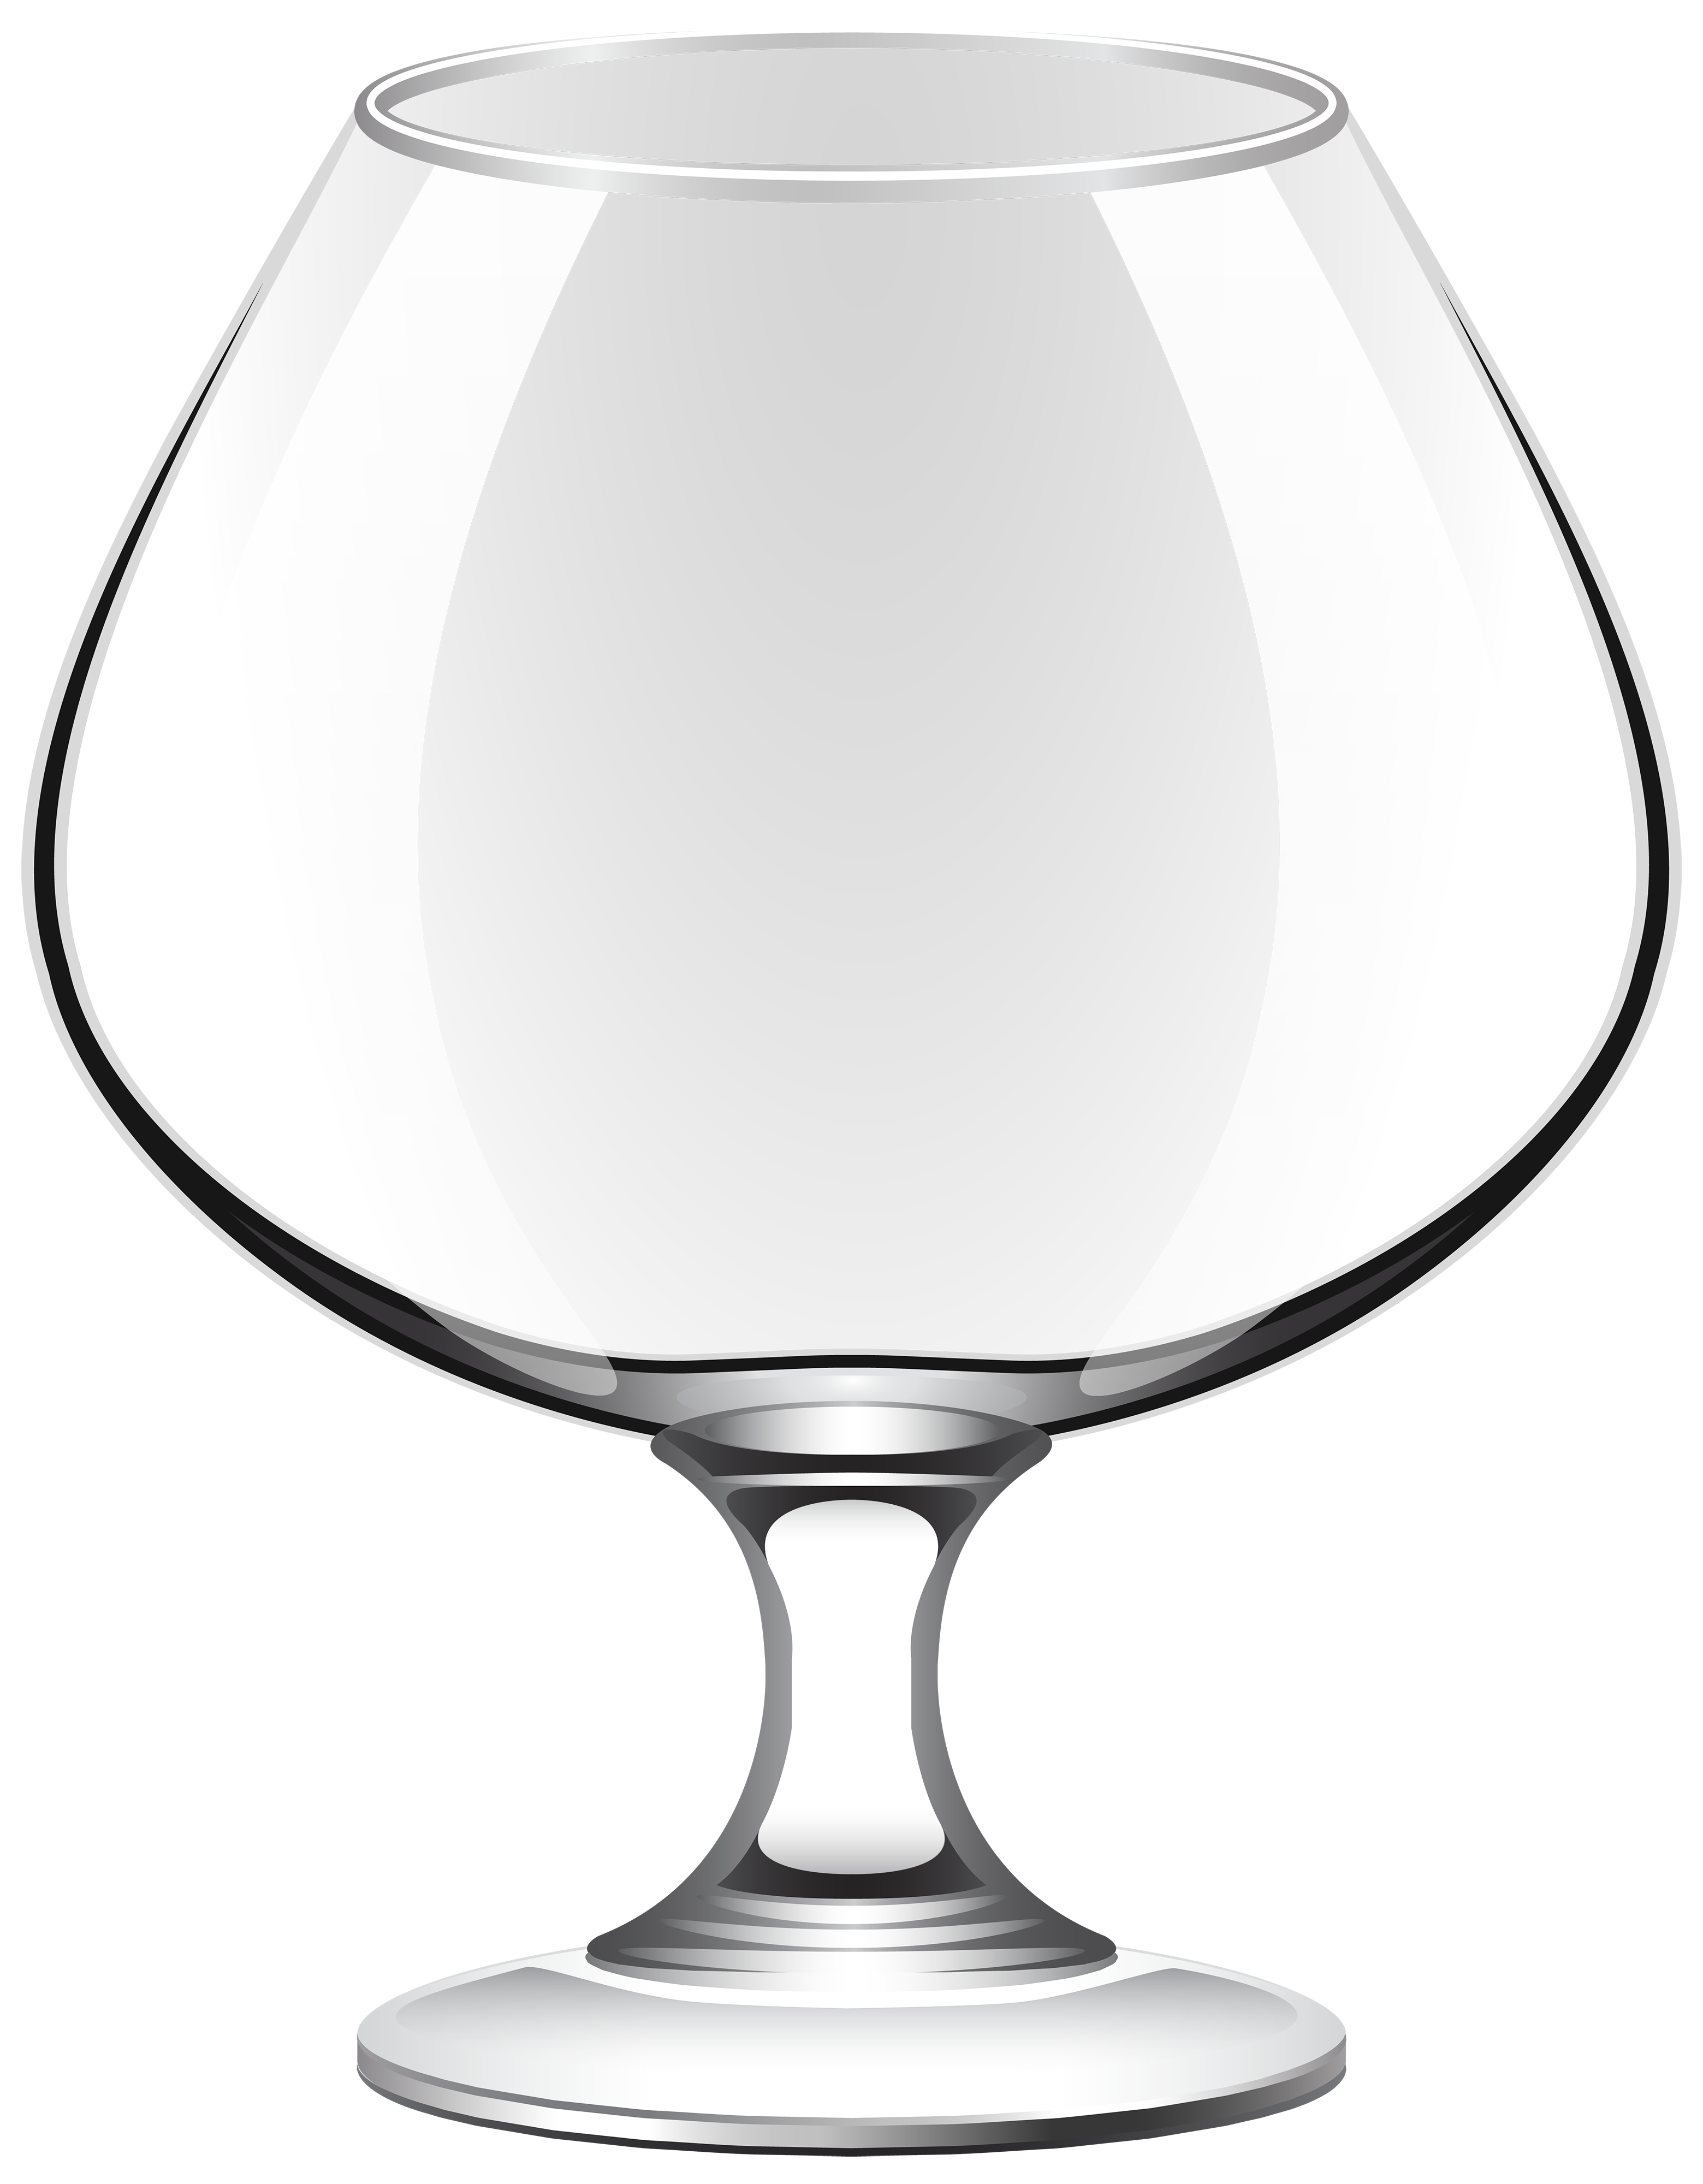 Glass png. Transparent brandy clipart best